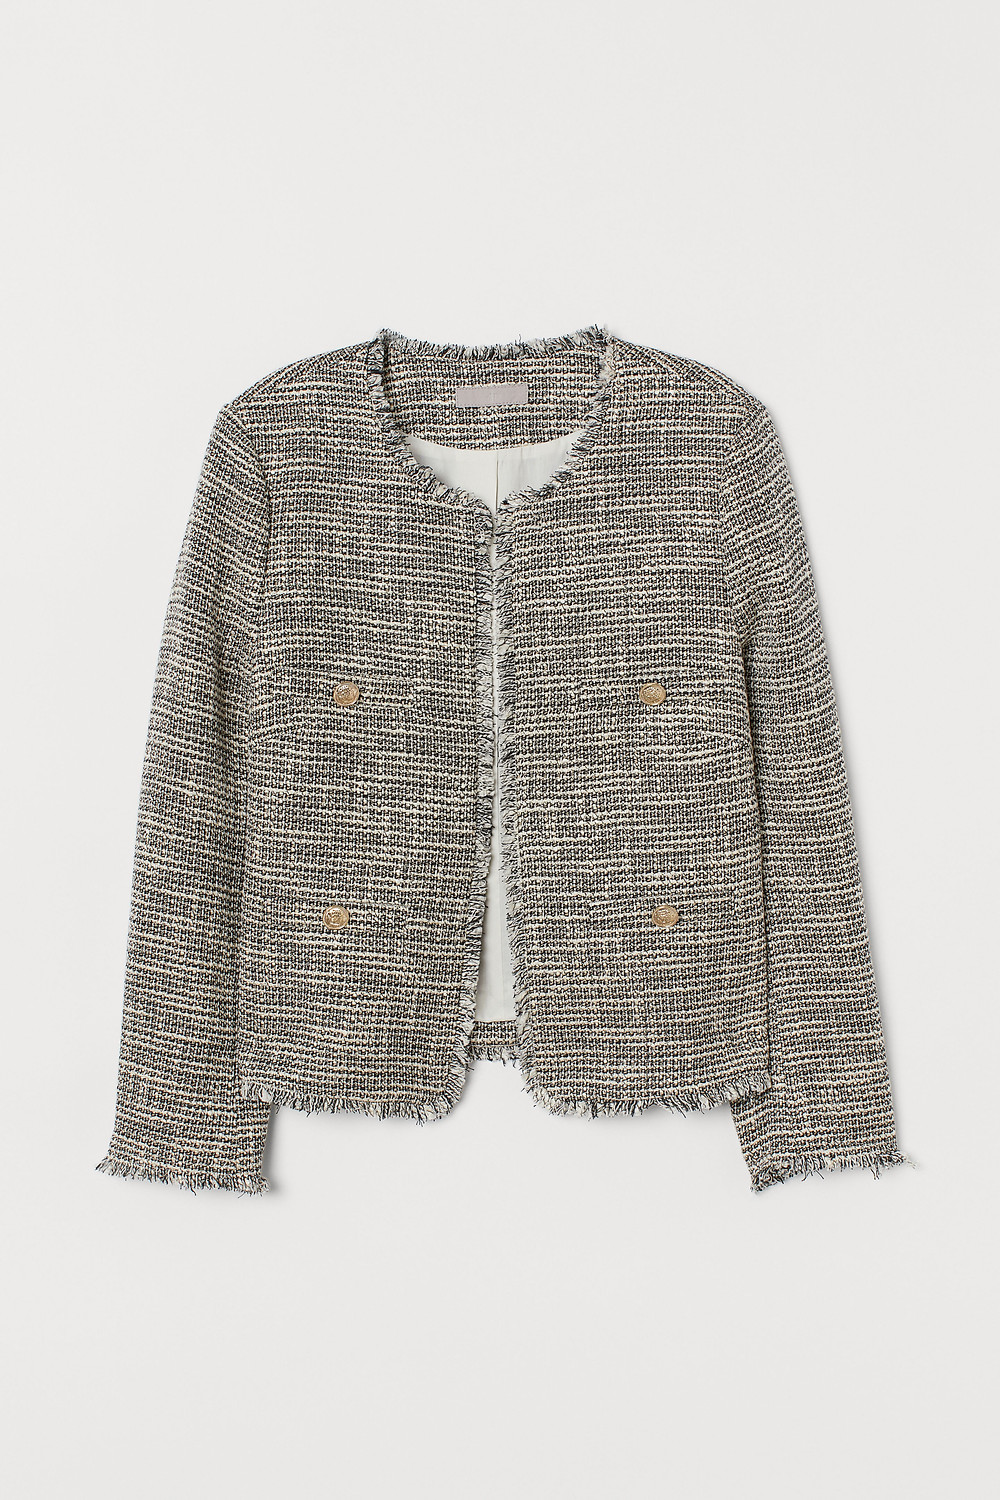 Chanel vibes with this H&M tweed jacket